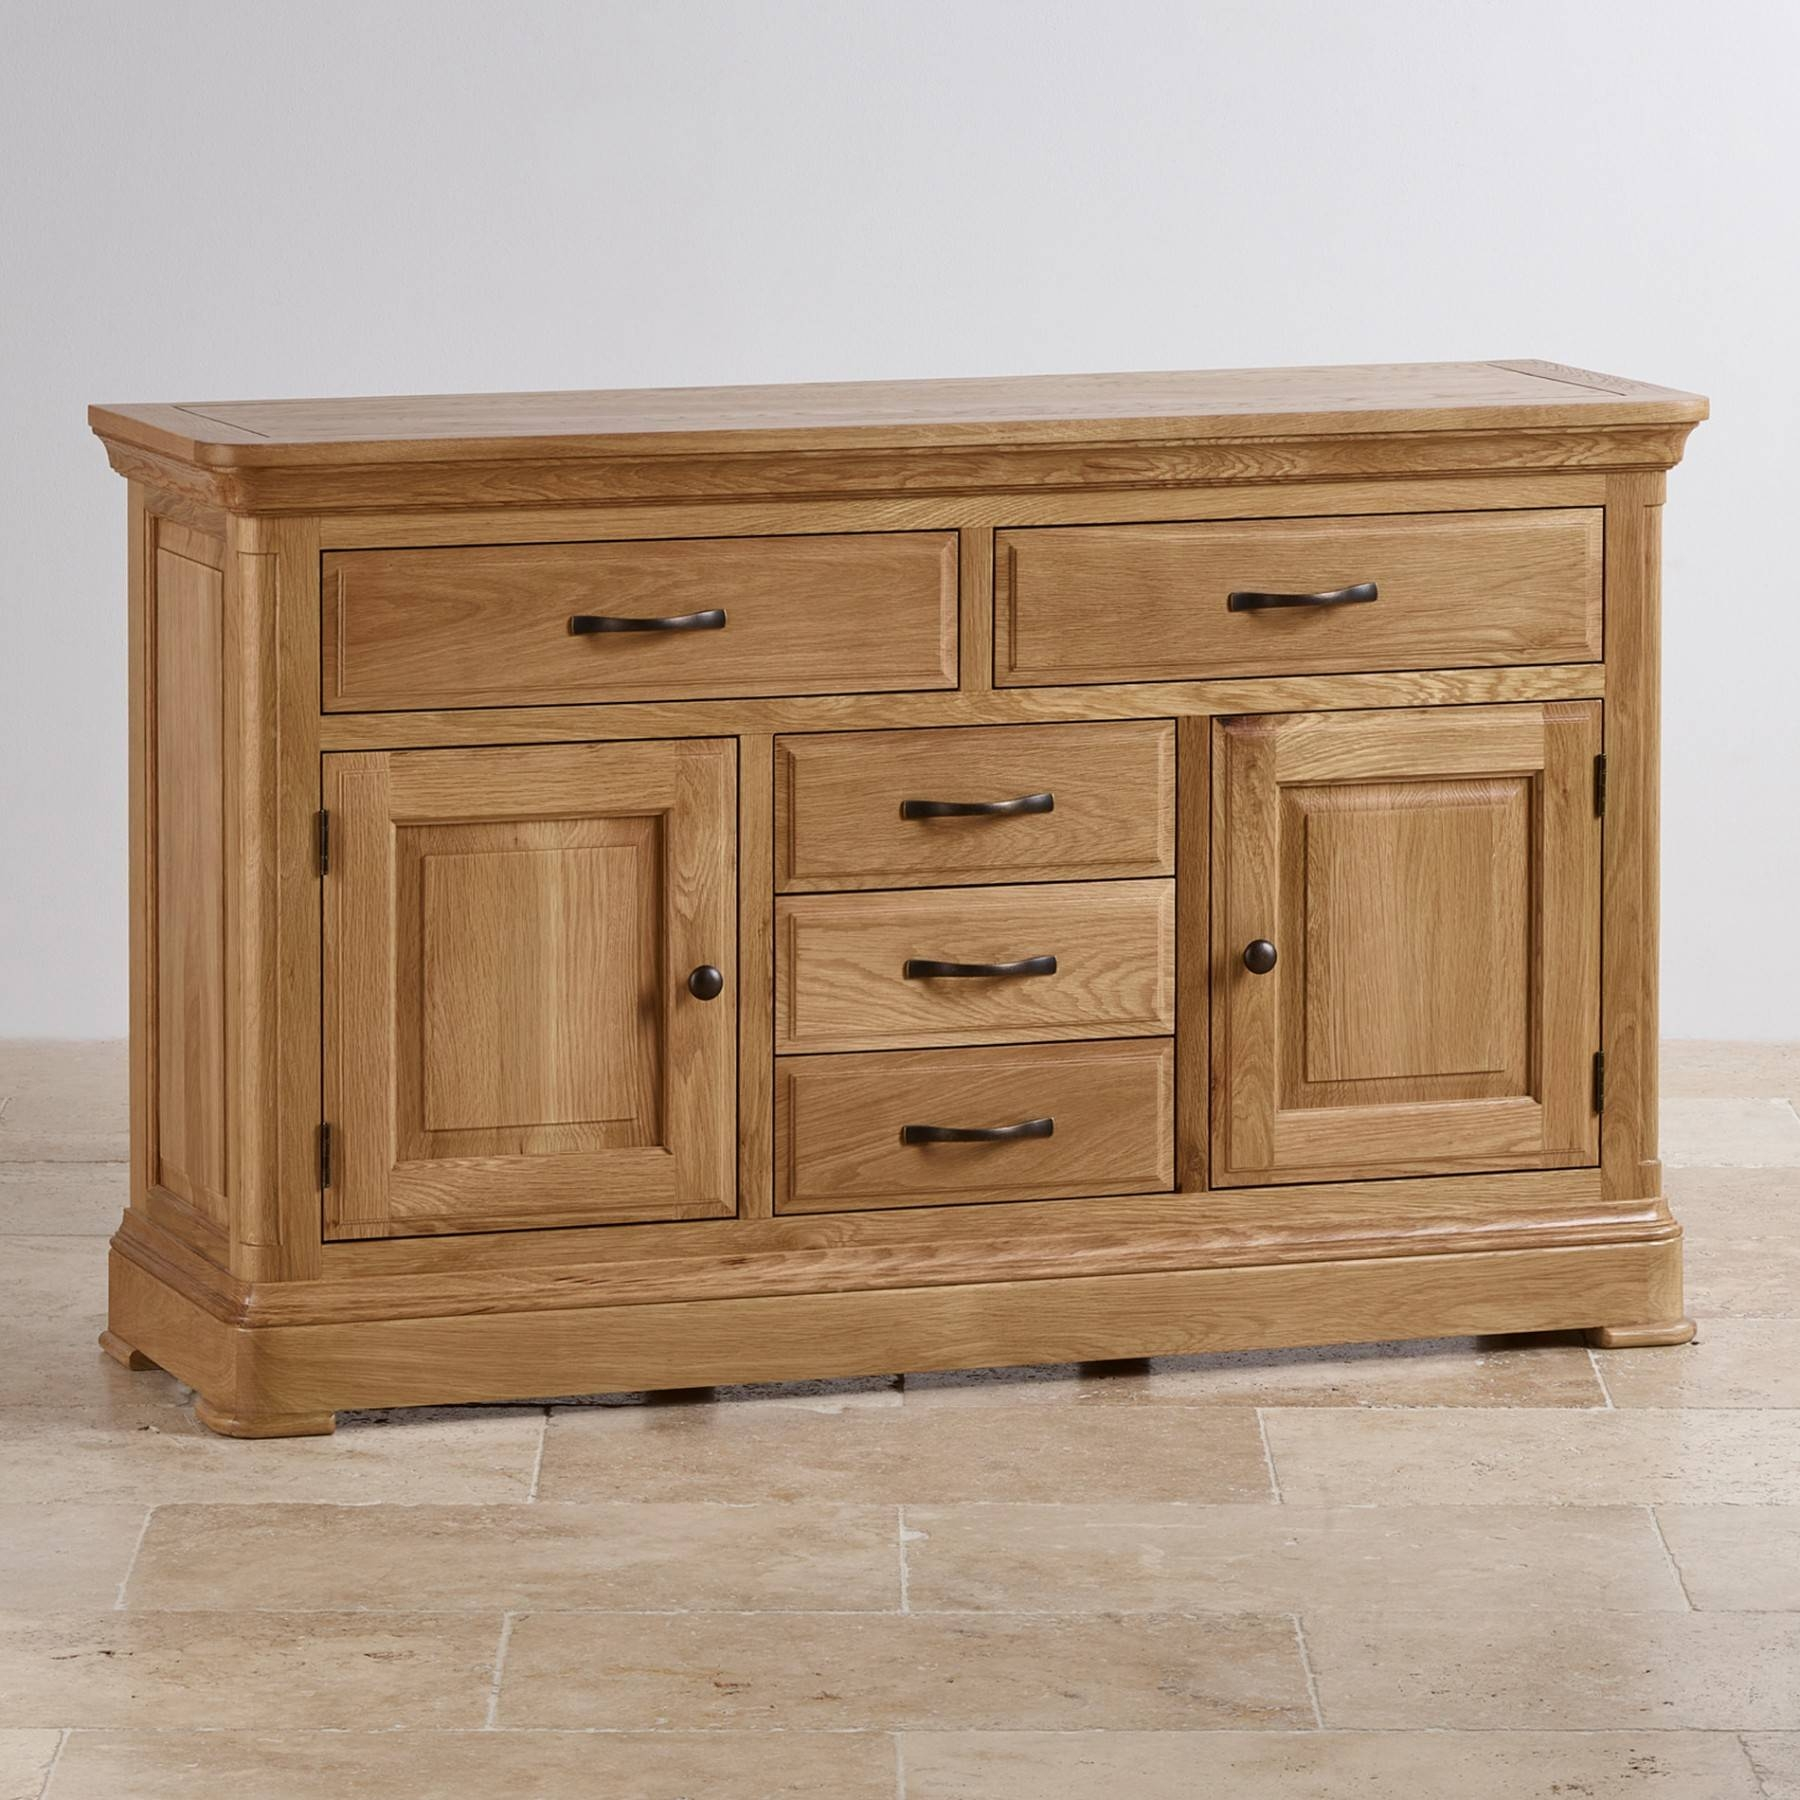 Canterbury Natural Solid Oak Large Sideboard | Sideboards | Dining With Regard To Best And Newest Oak Furniture Land Sideboards (#3 of 15)